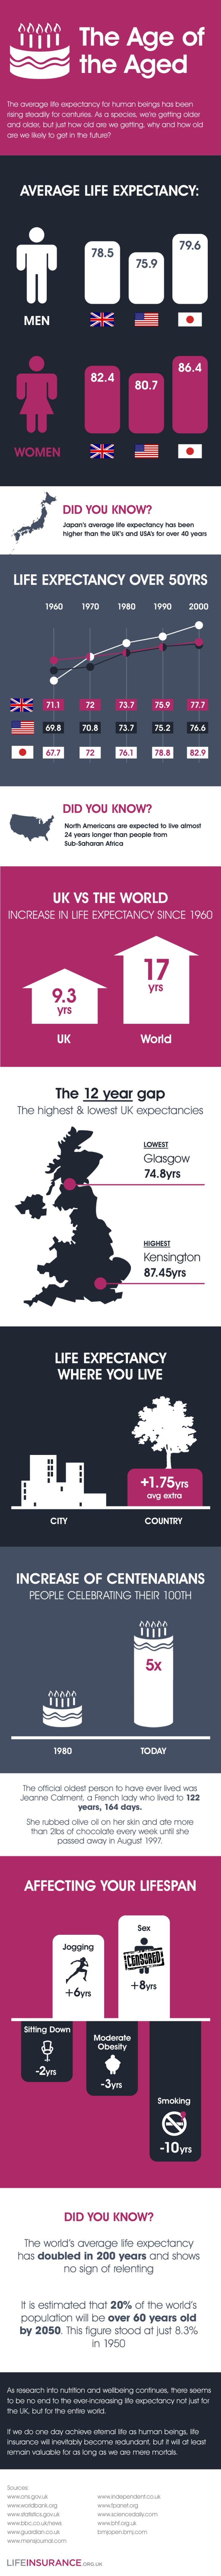 The Age of the Aged (Infographic)